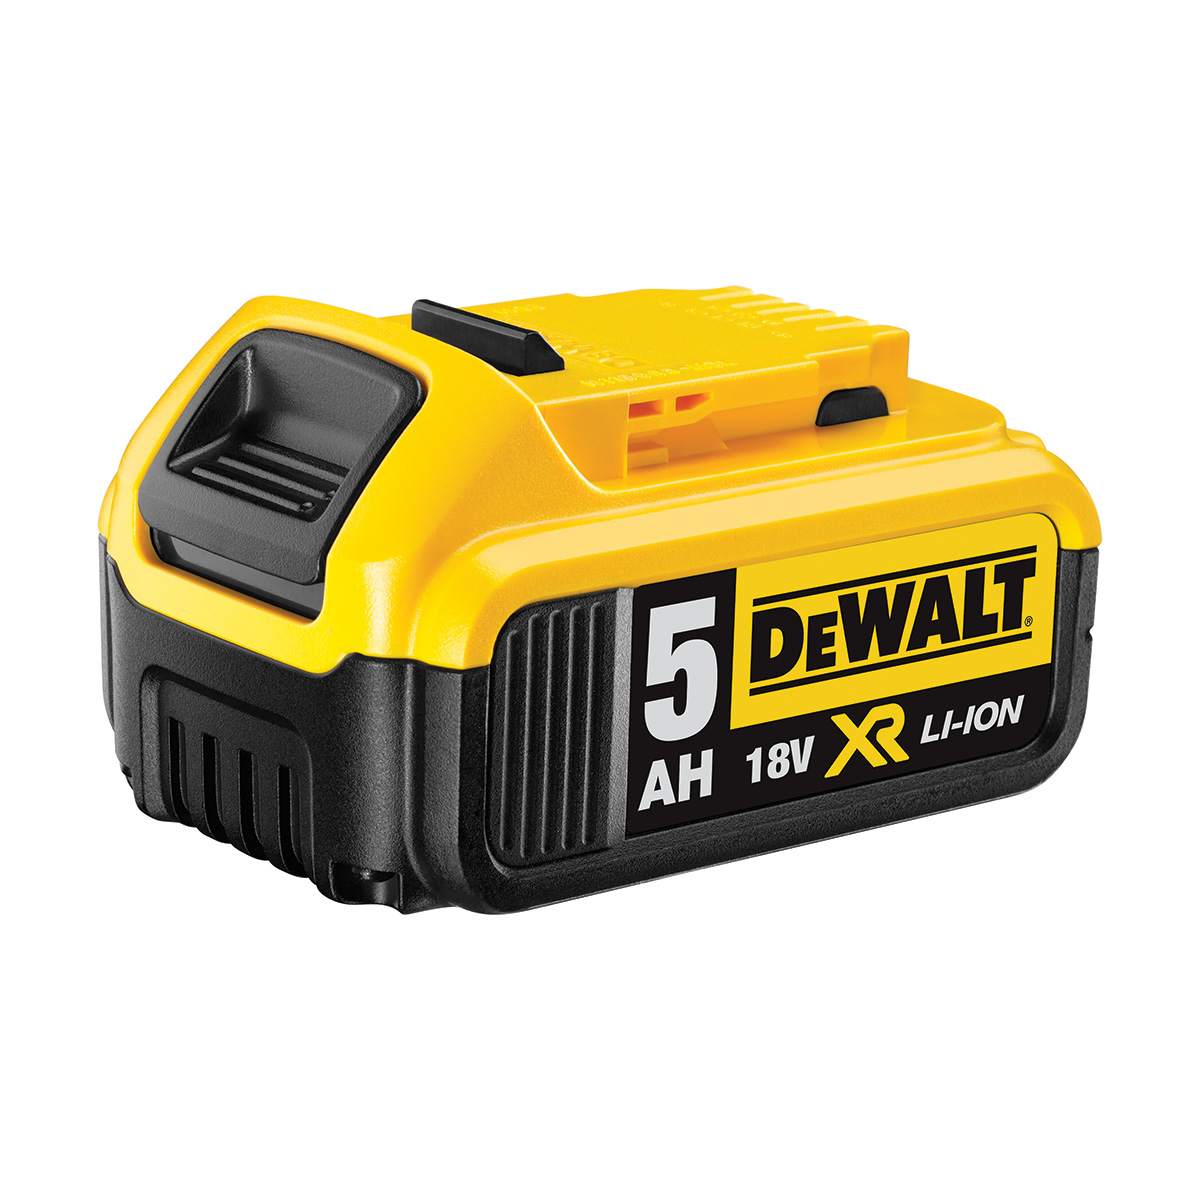 DEWALT DCB184 18V 5.0AH XR LITHIUM ION BATTERY PACK WITH CHARGE INDICATOR